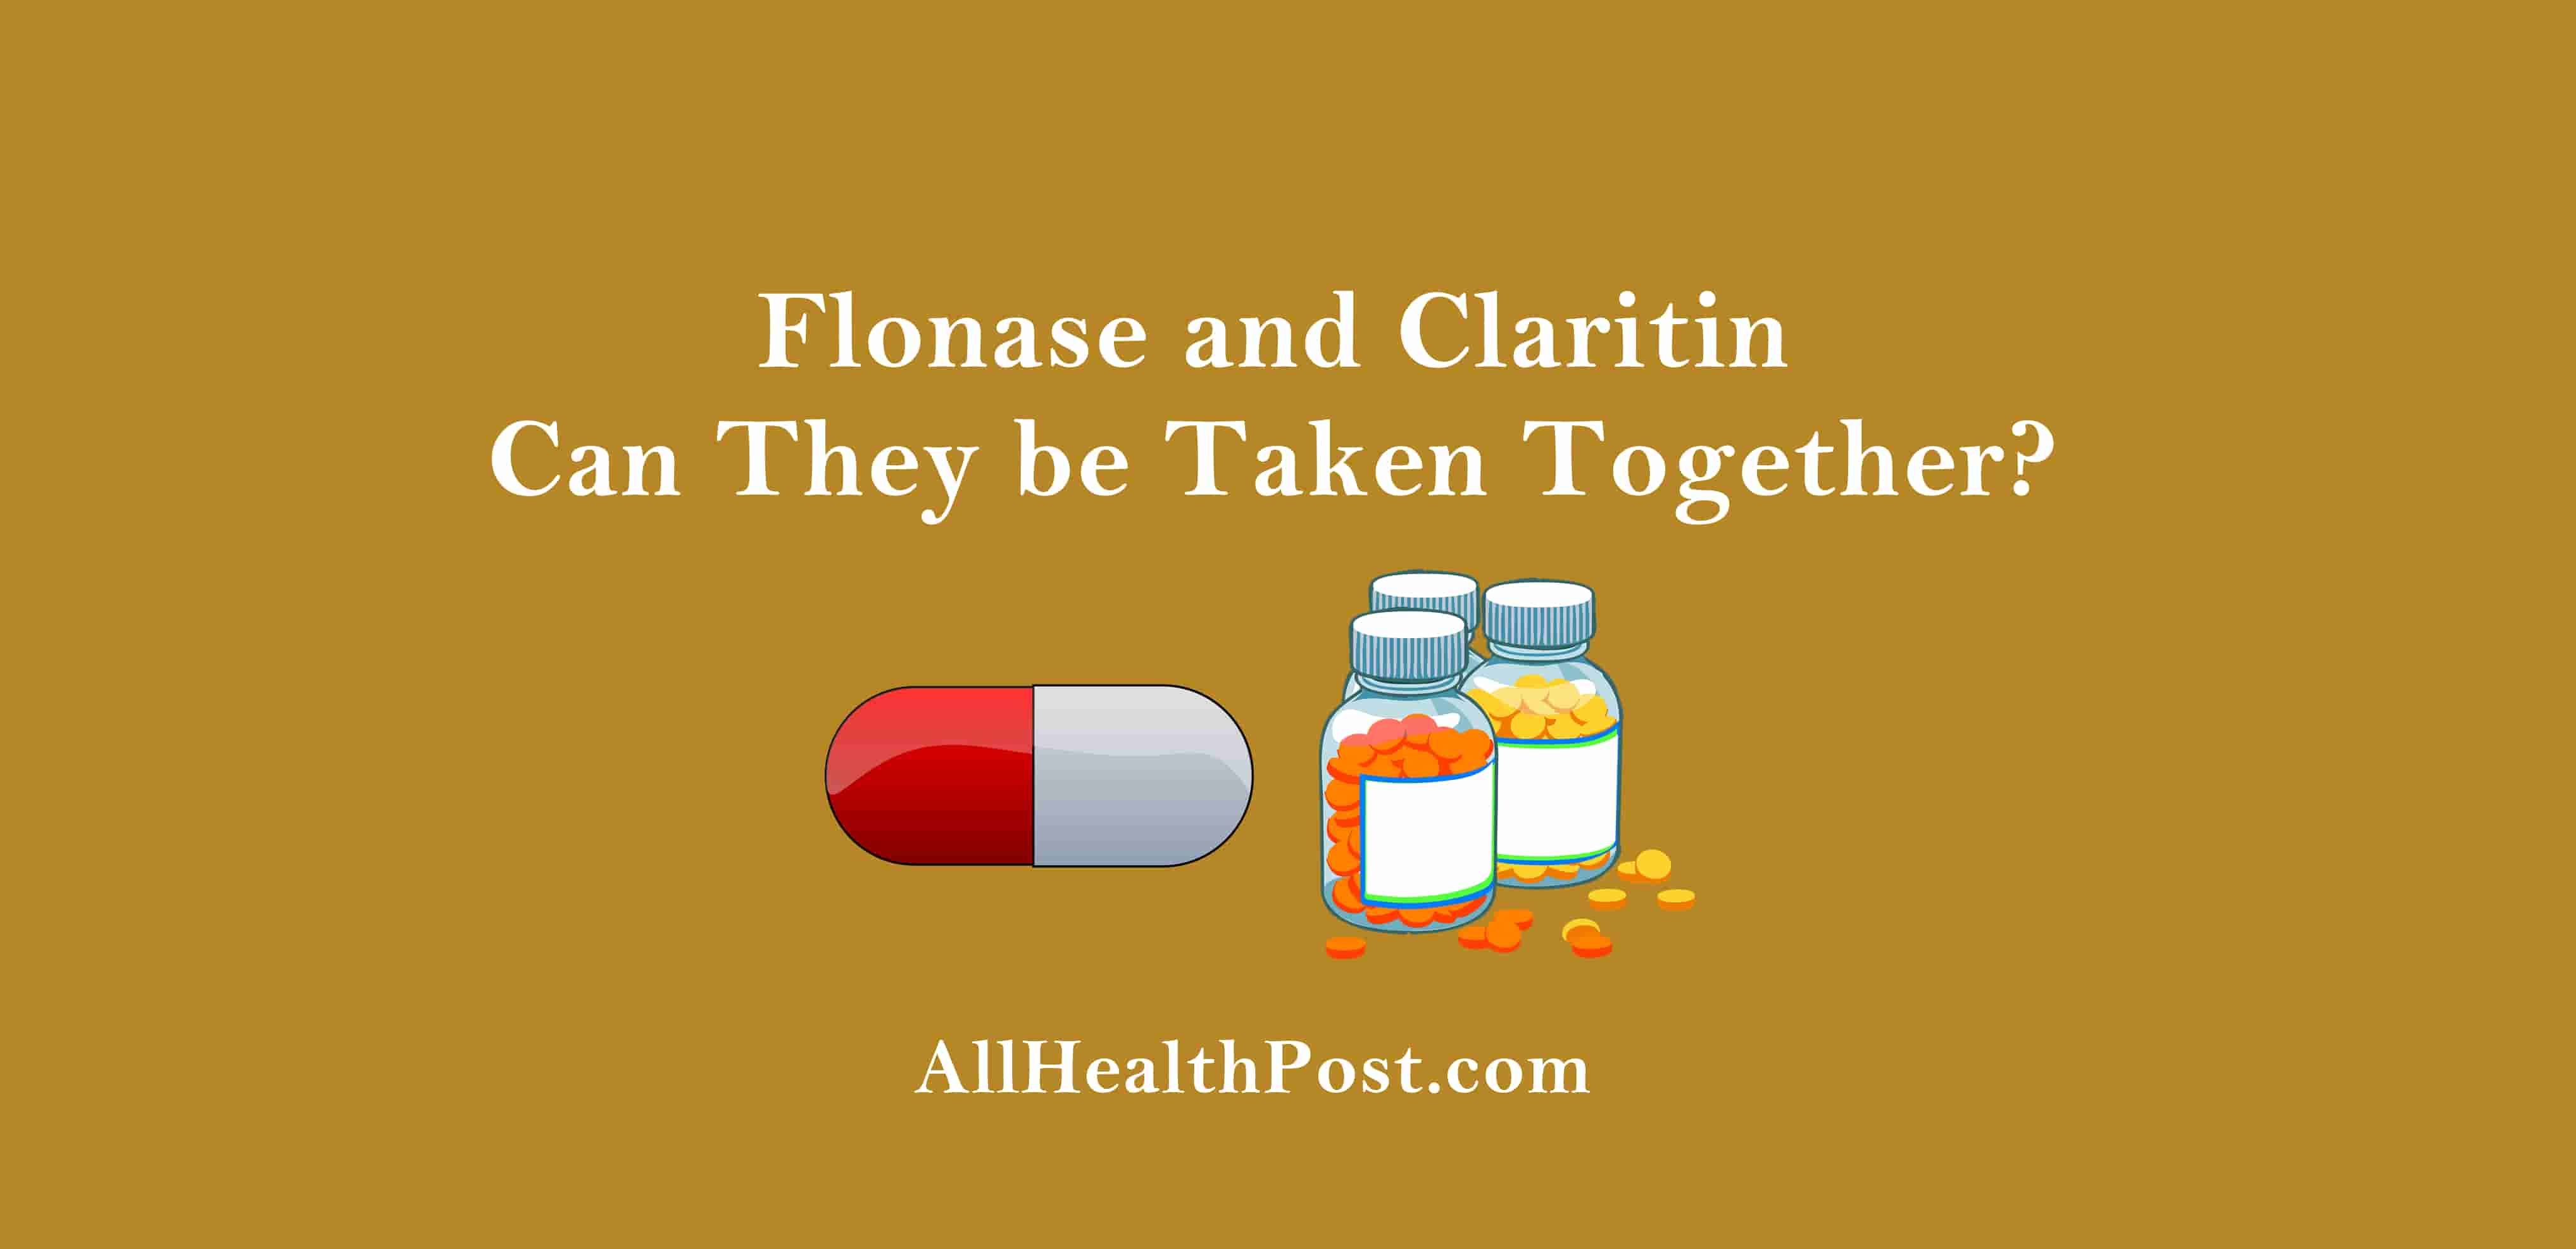 Flonase and Claritin Can They be Taken Together